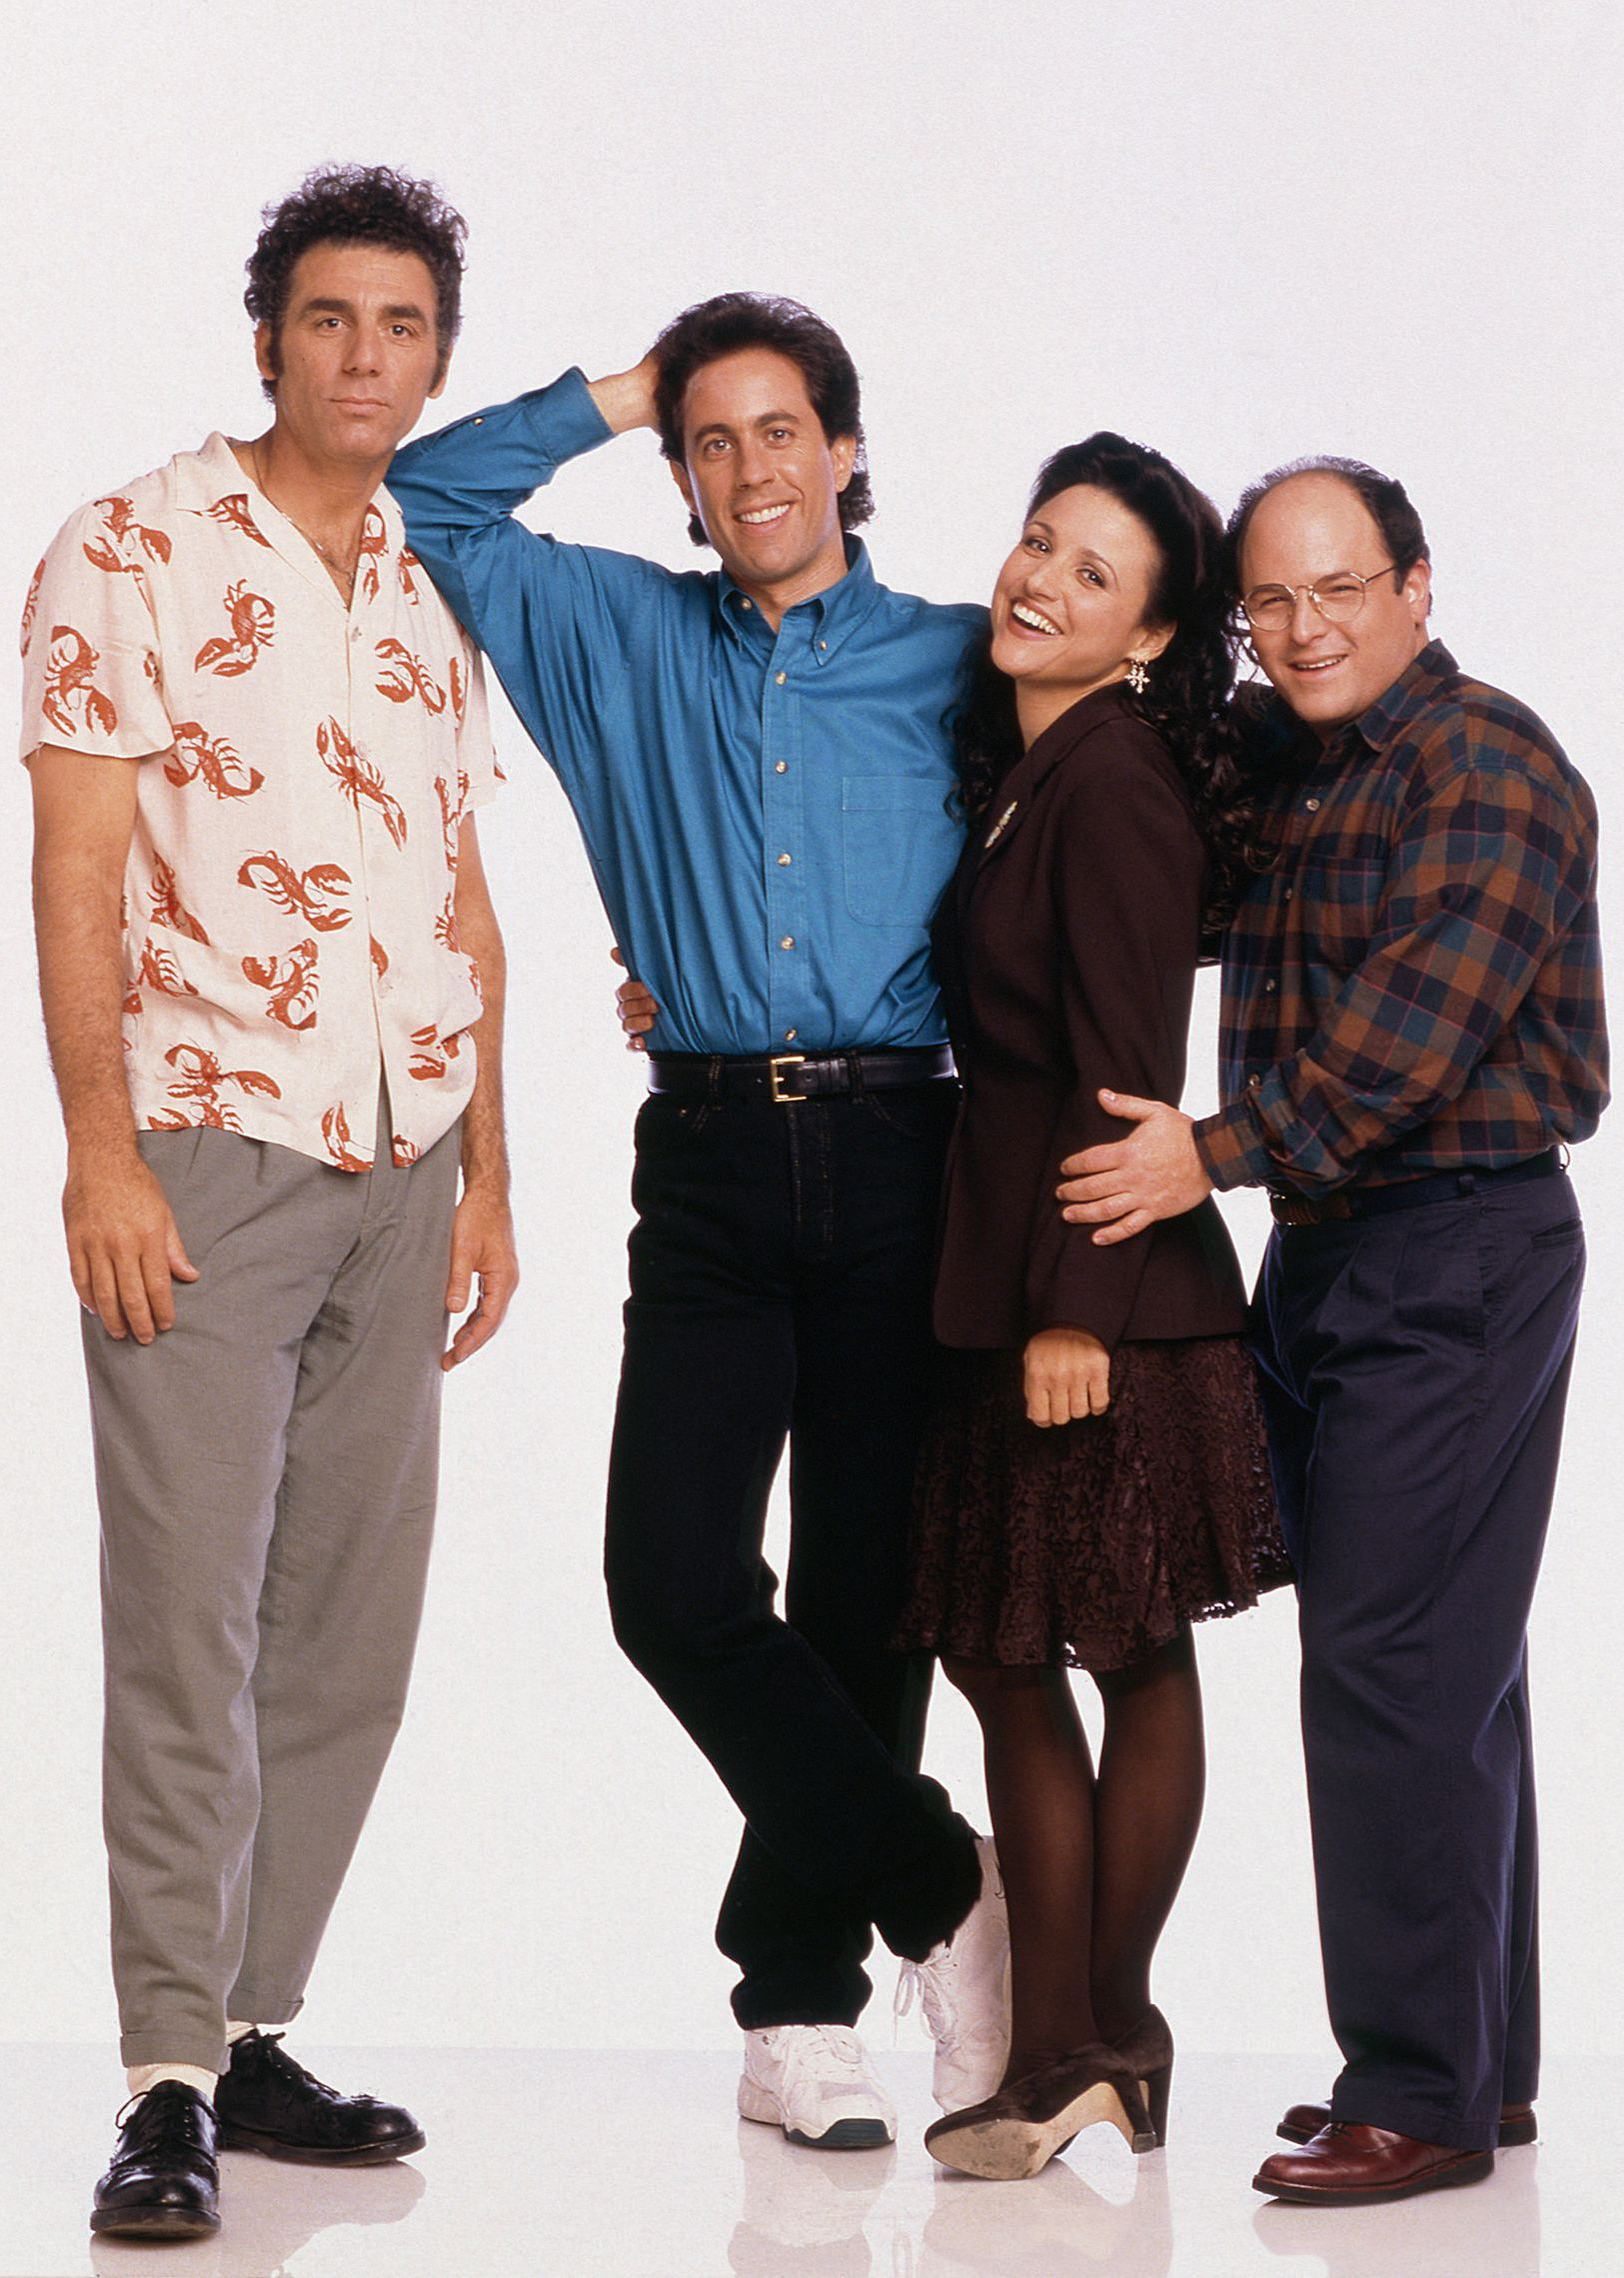 rs 134768 20140708 seinfeld x1800 1404836765 4b99e8a9 53e4 462d 84aa 2acd539ccfc6 Forget Friends: Millennials Are Now Starting To Reassess Seinfeld